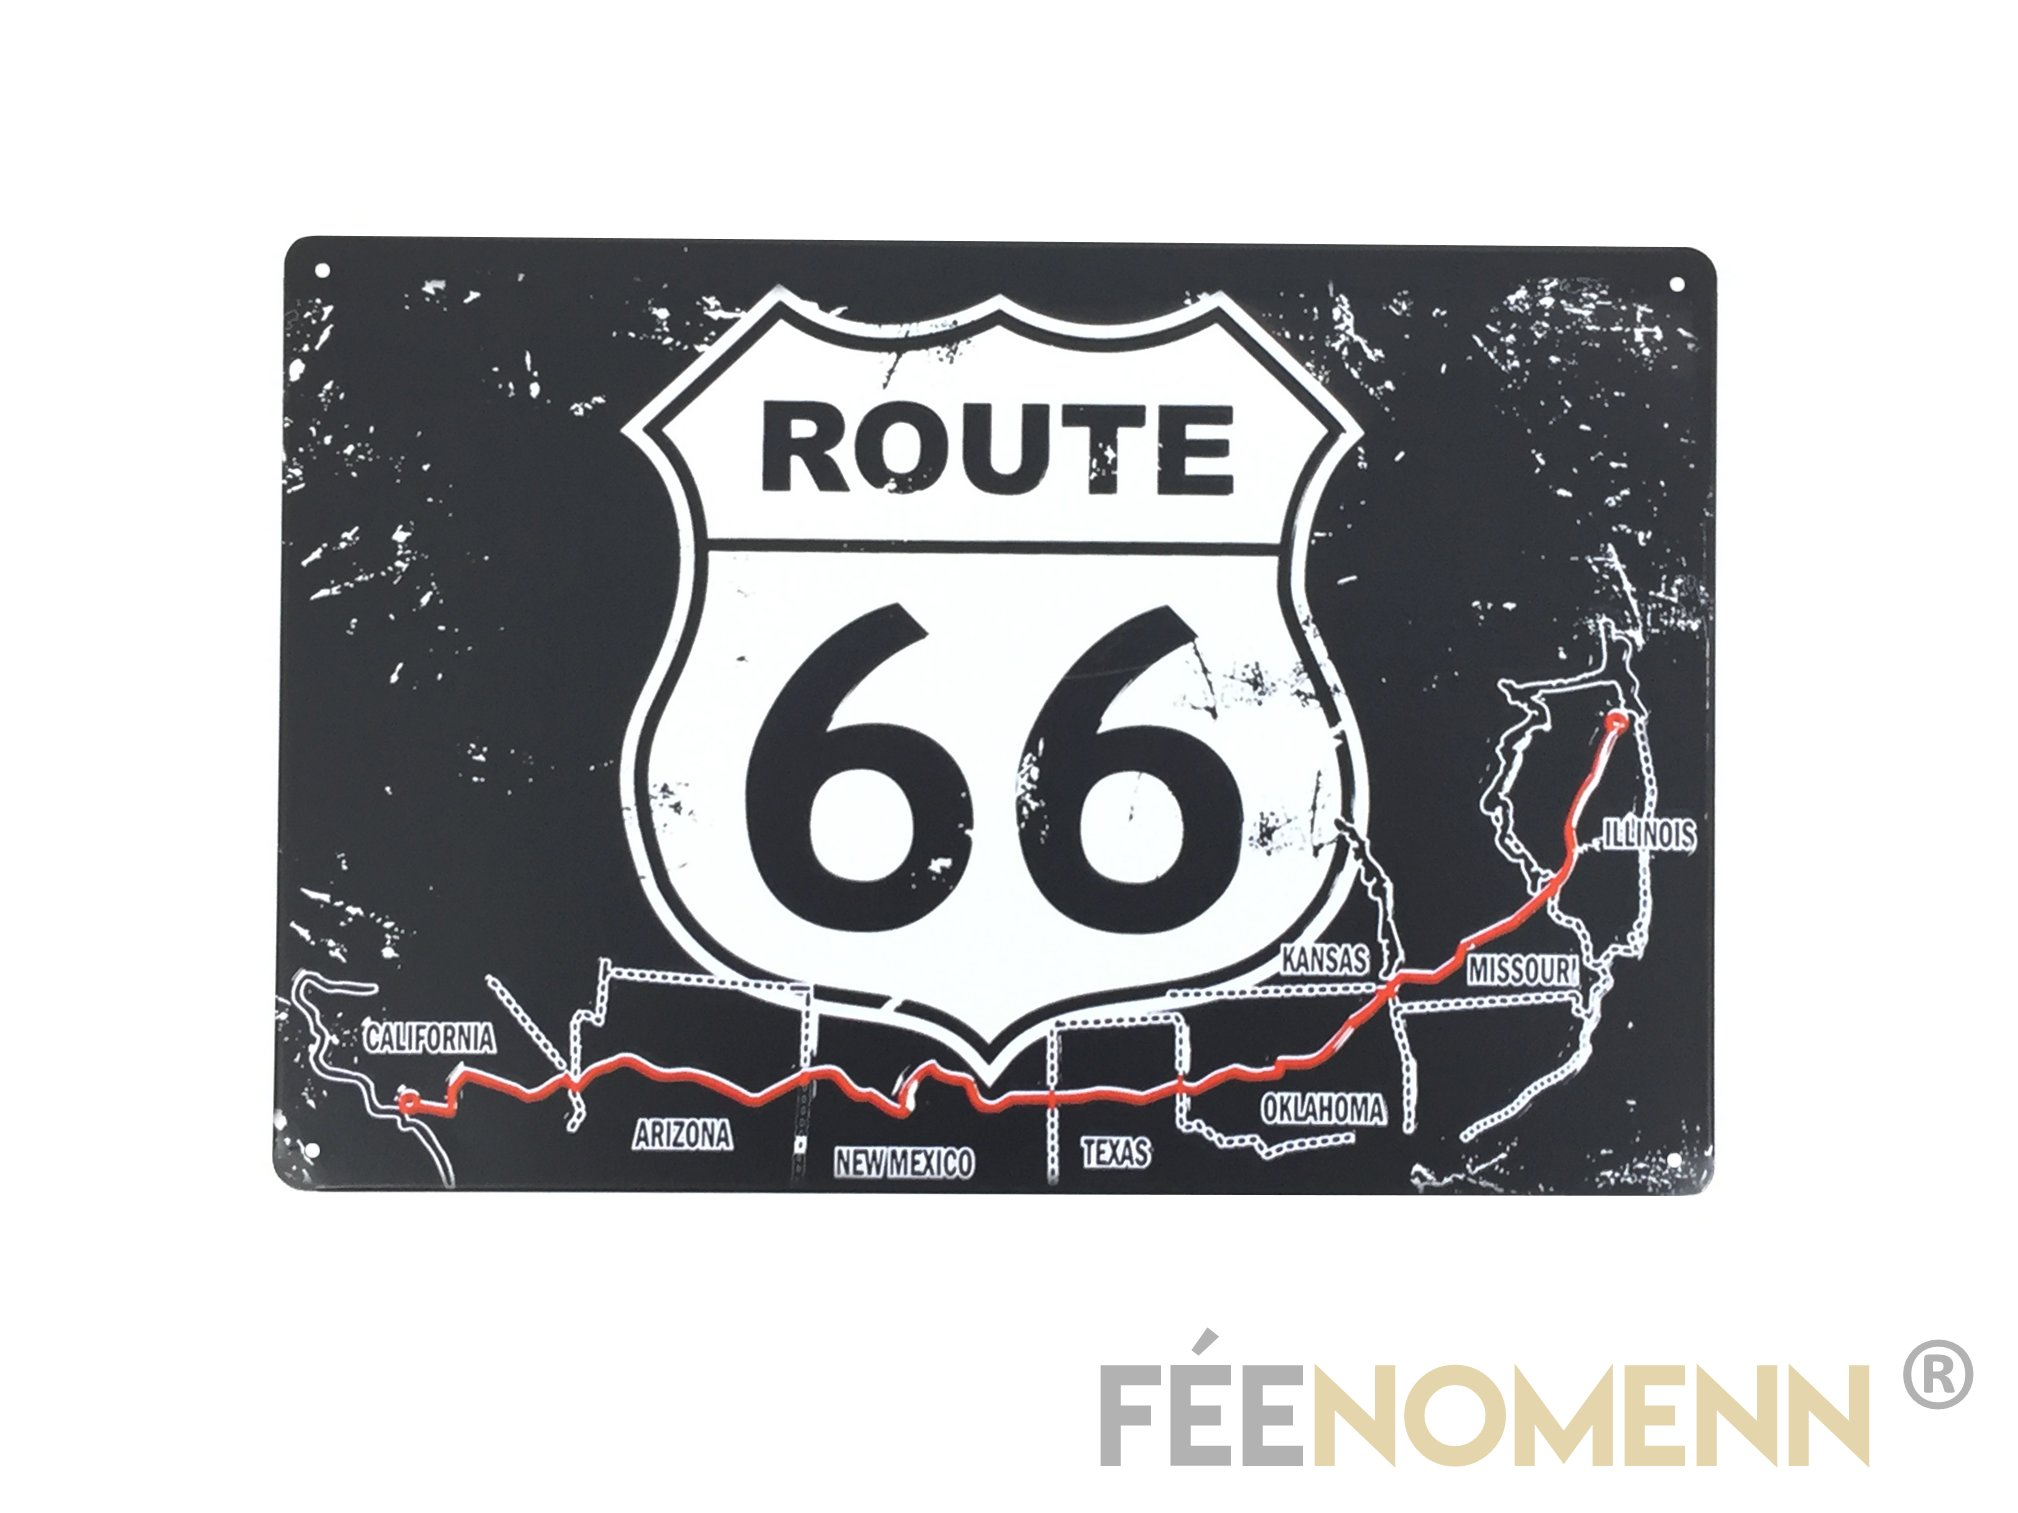 plaque m tal d co vintage trac route 66 20x30cm d co accessoires plaques metal f enomenn. Black Bedroom Furniture Sets. Home Design Ideas